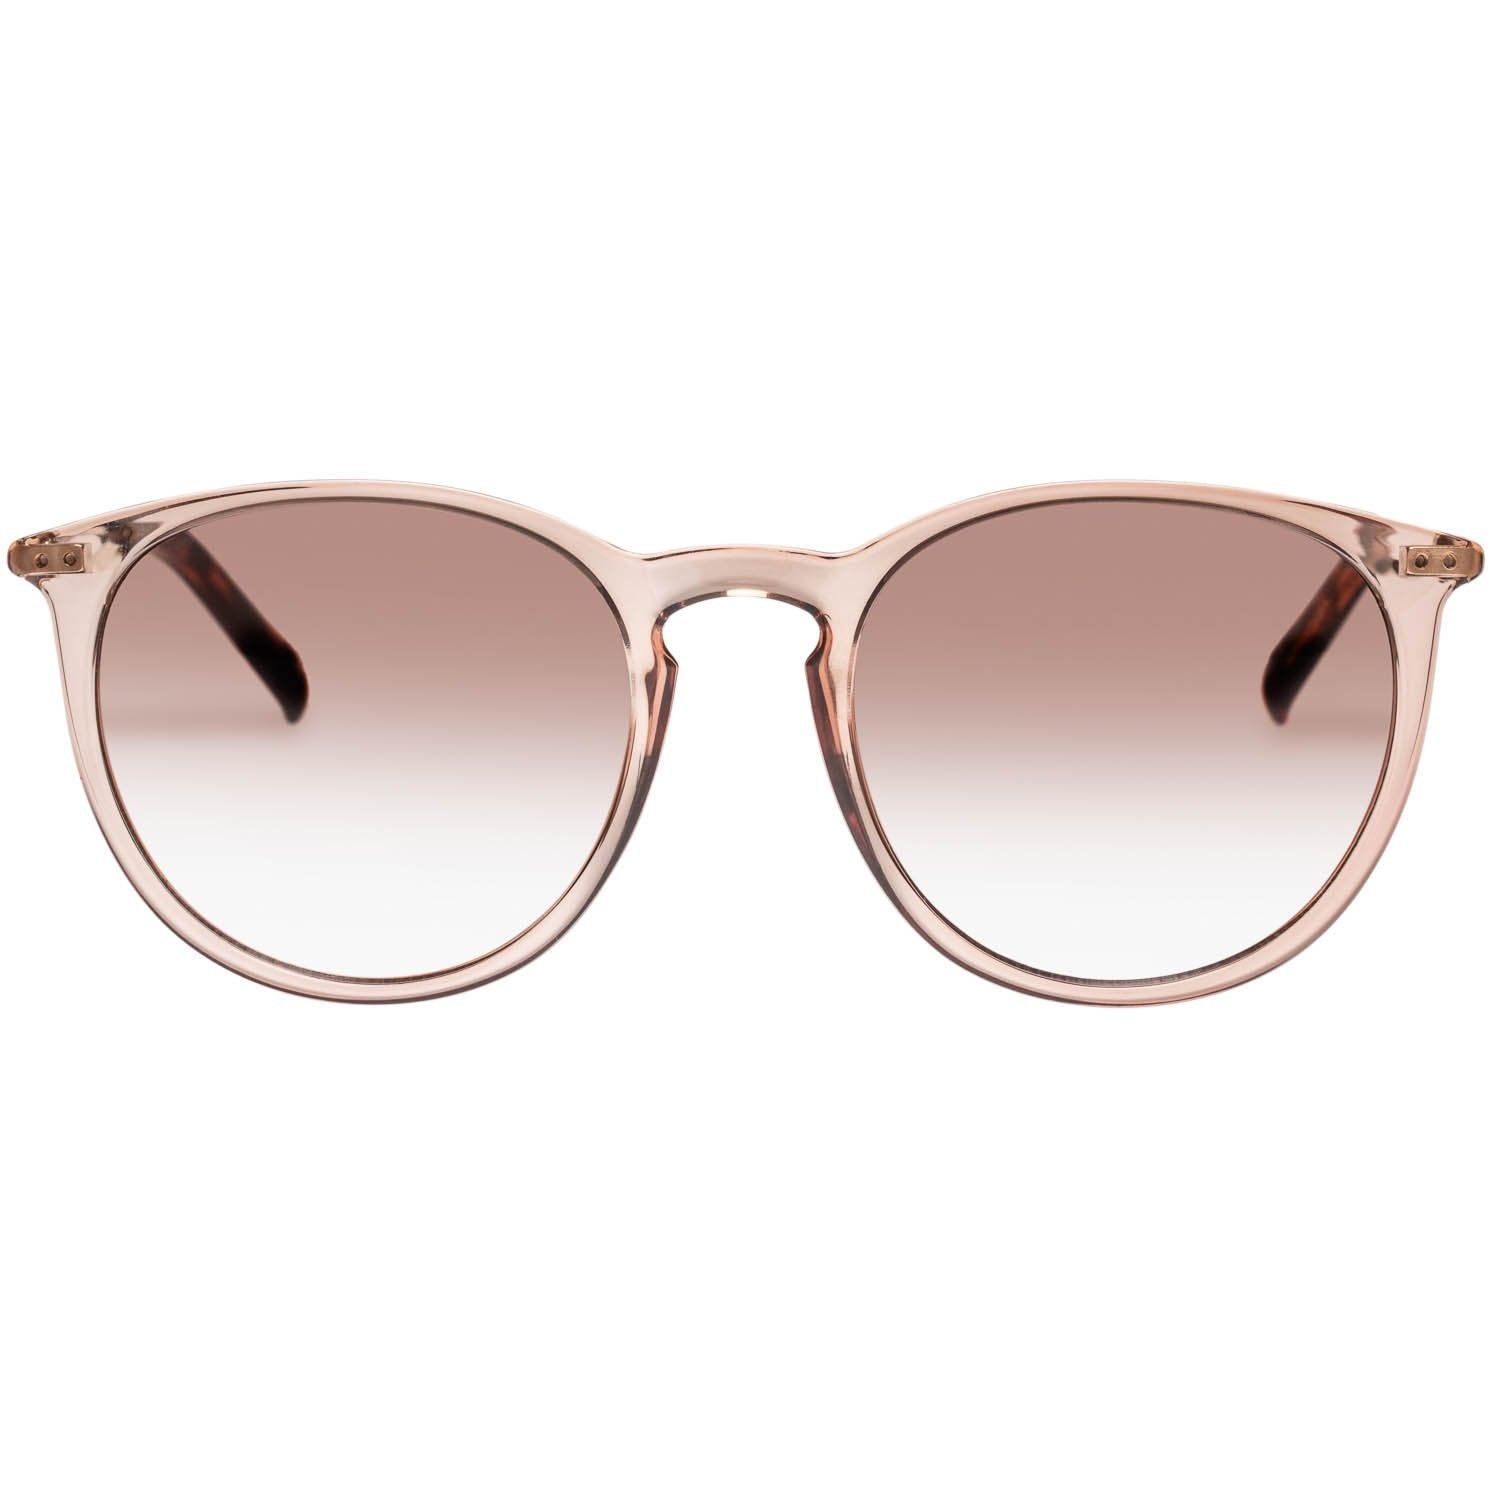 Oh Buoy Sunglasses - Tan Gold